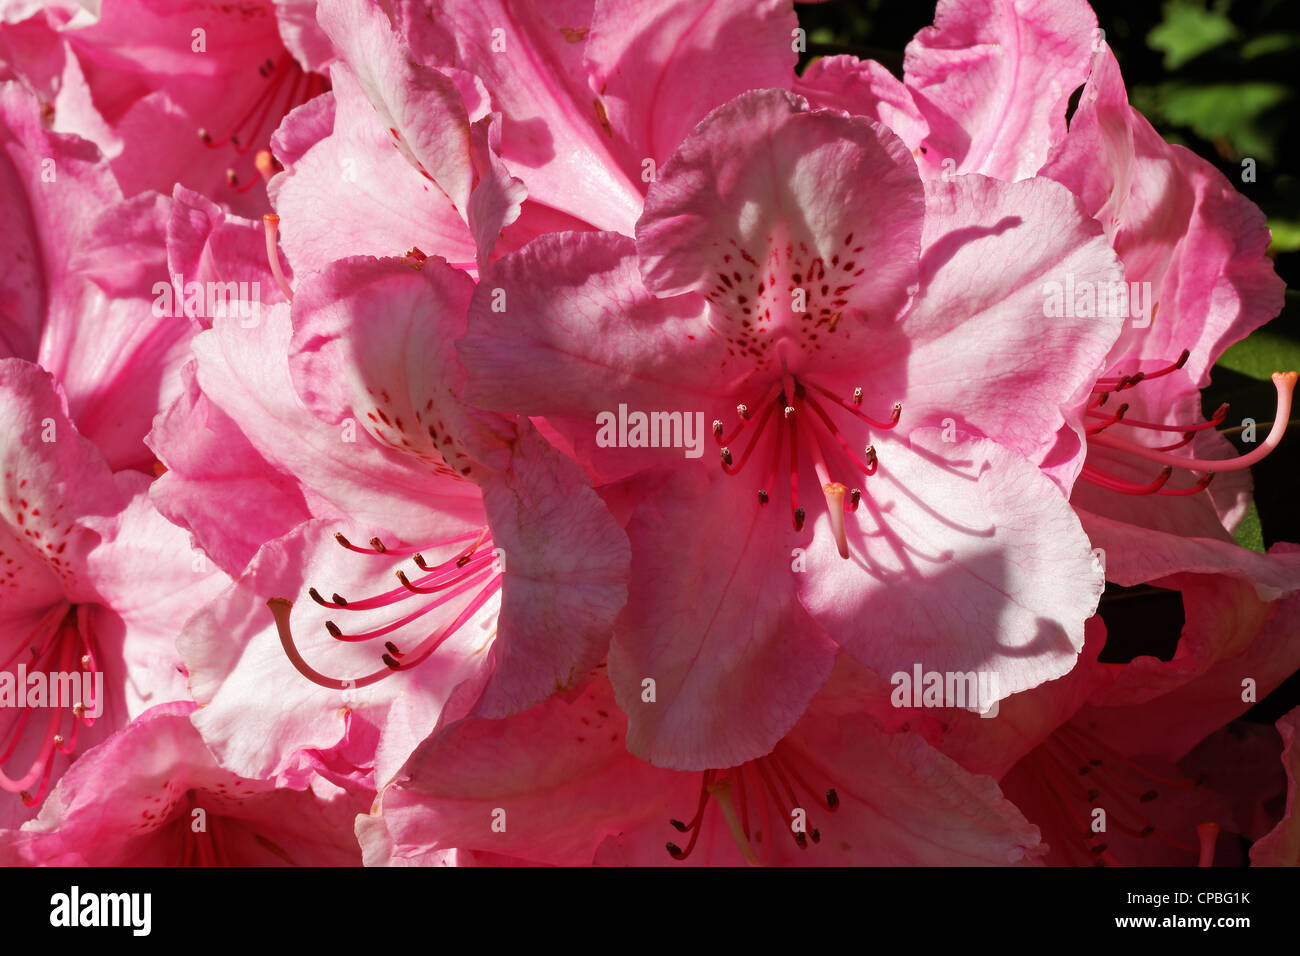 Close up of a pink rhododendron flower Stock Photo